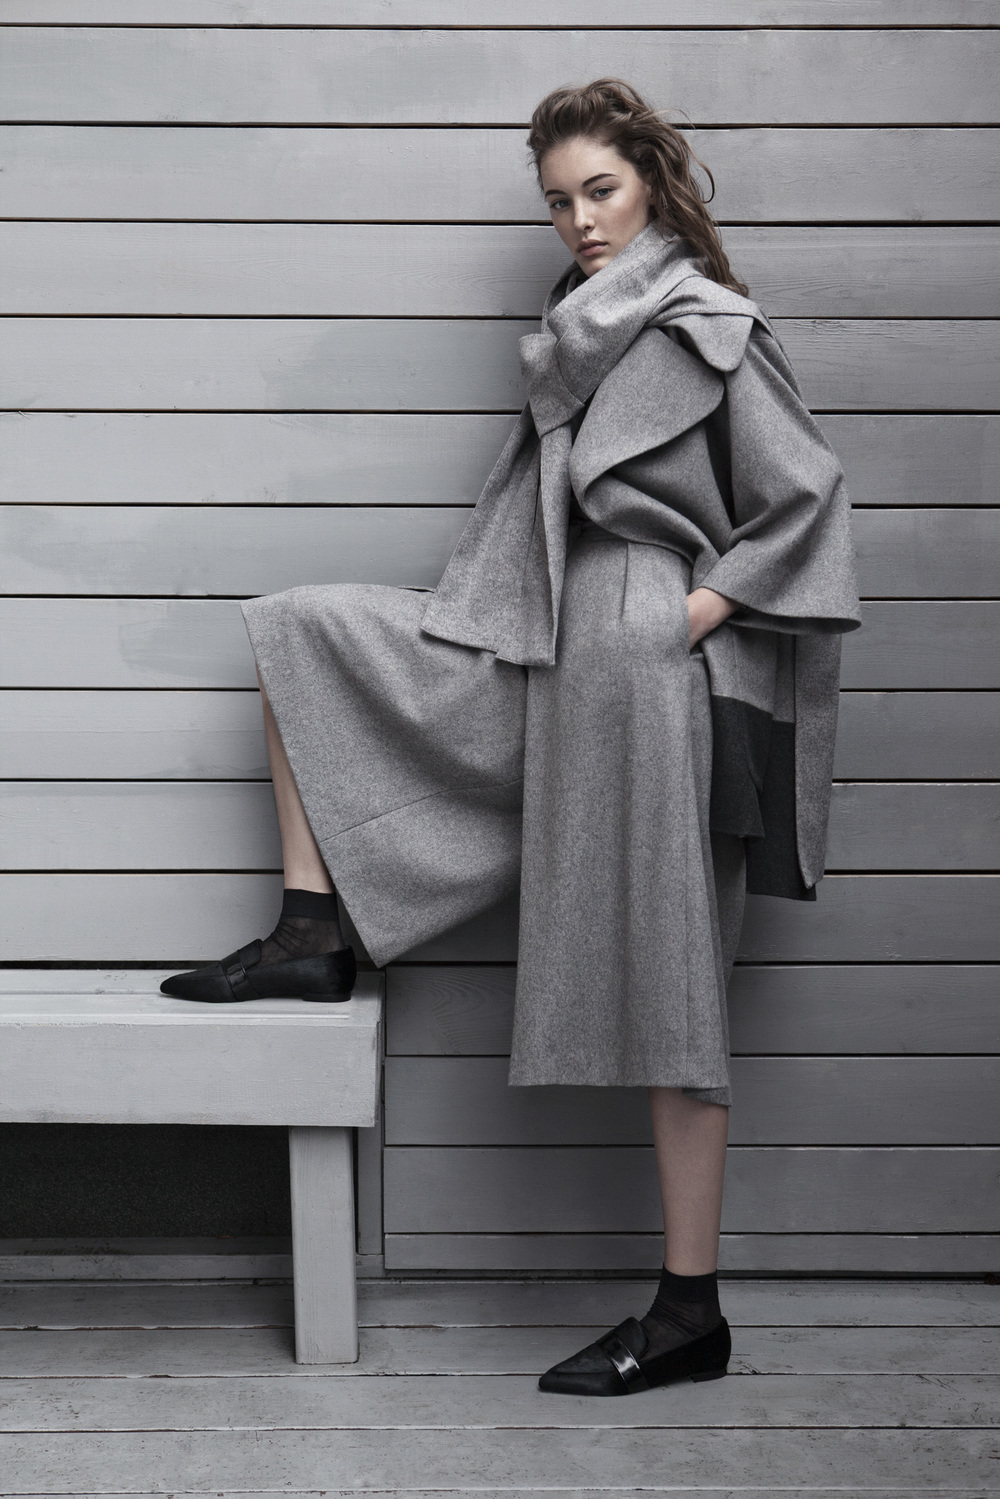 - Grey Capsule ....Capsule #1 brings together ten refined pieces in shades of grey that are effortless, relaxed and easy to mix and match. Chic with notes of modern femininity, these neutral hues are versatile and offer endless possibilities in a women's wardrobe. In this collection, sumptuous textures in an assemblage of greys are tailored with meticulous craftsmanship to bring forth studied, contemporary silhouettes of enduring appeal. ..    Normal 0   21   false false false  EN-US JA X-NONE                                                                                                                                                                                         /* Style Definitions */ table.MsoNormalTable 	{mso-style-name: